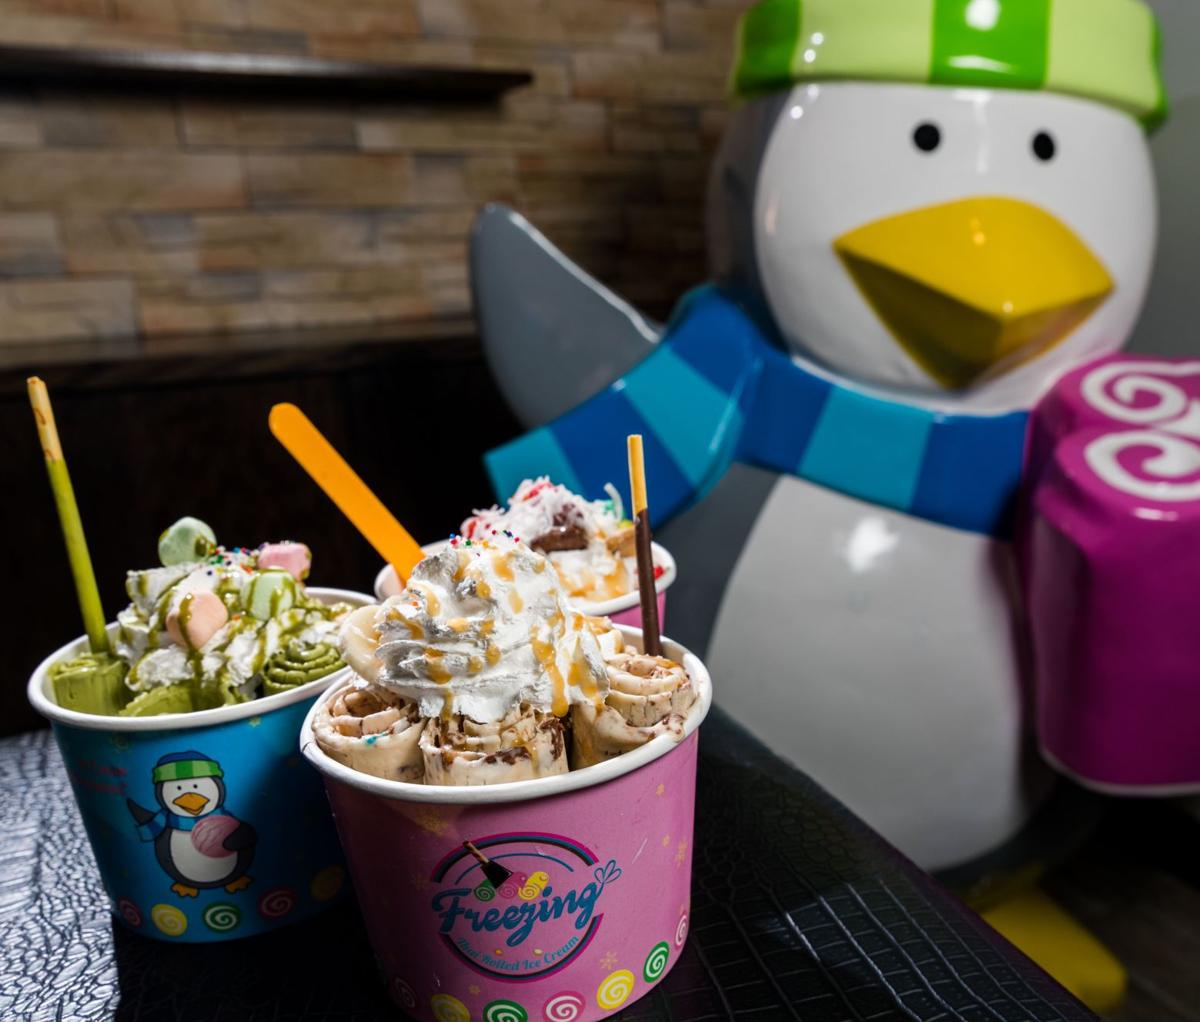 20180823_liv_dinereview_freezing_picMCD03